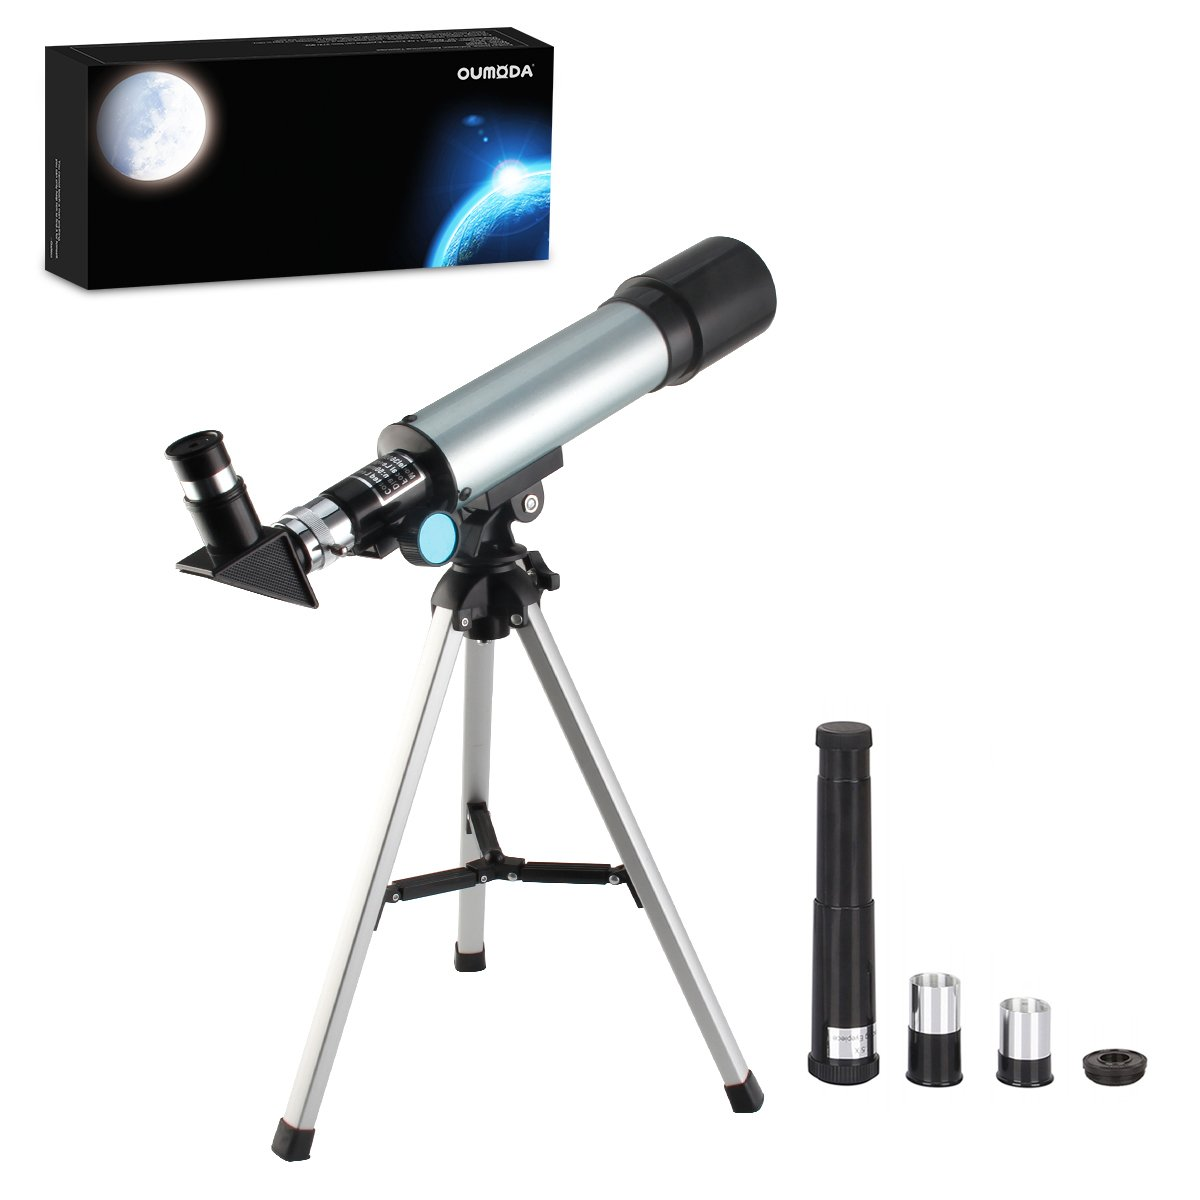 Oumoda Telescope, Travel Scope, 90 X Refractor Telescope, Astronomy Telescope Tabletop Nature Exploration Gifts Toys for Kids, Adults Sky Star Gazing, Birds Watching